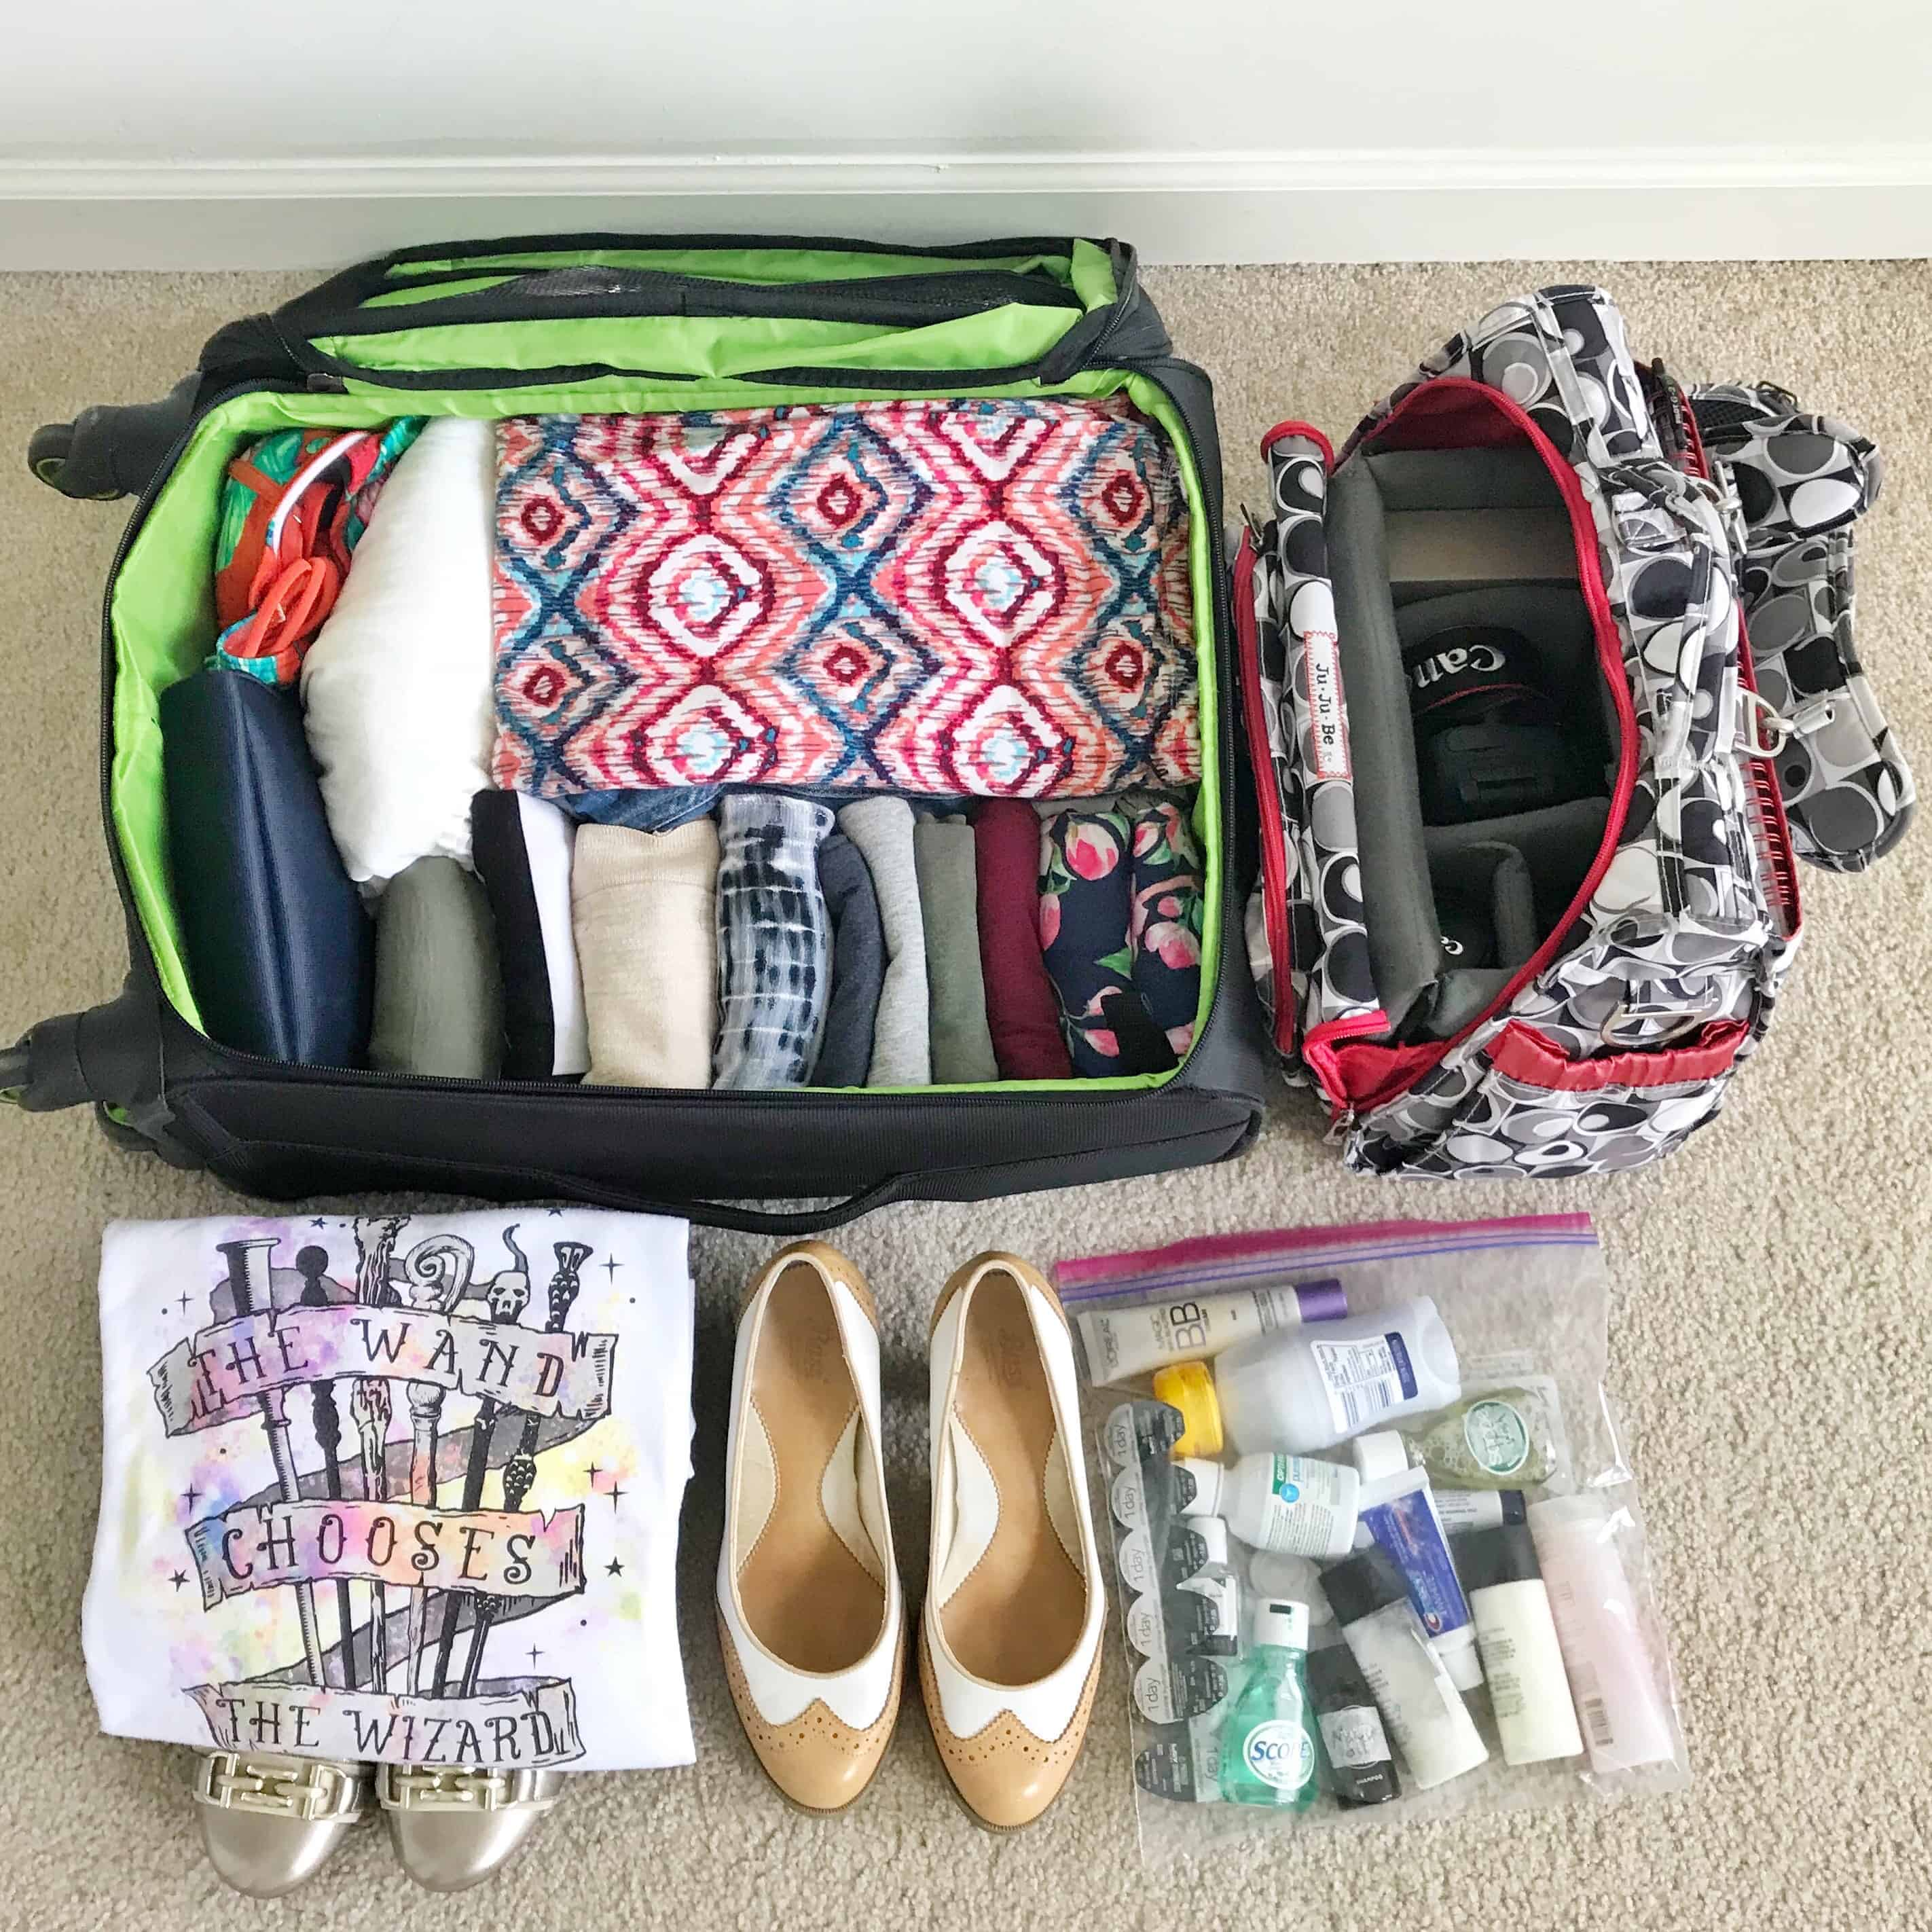 A well organized carry-on suitcase